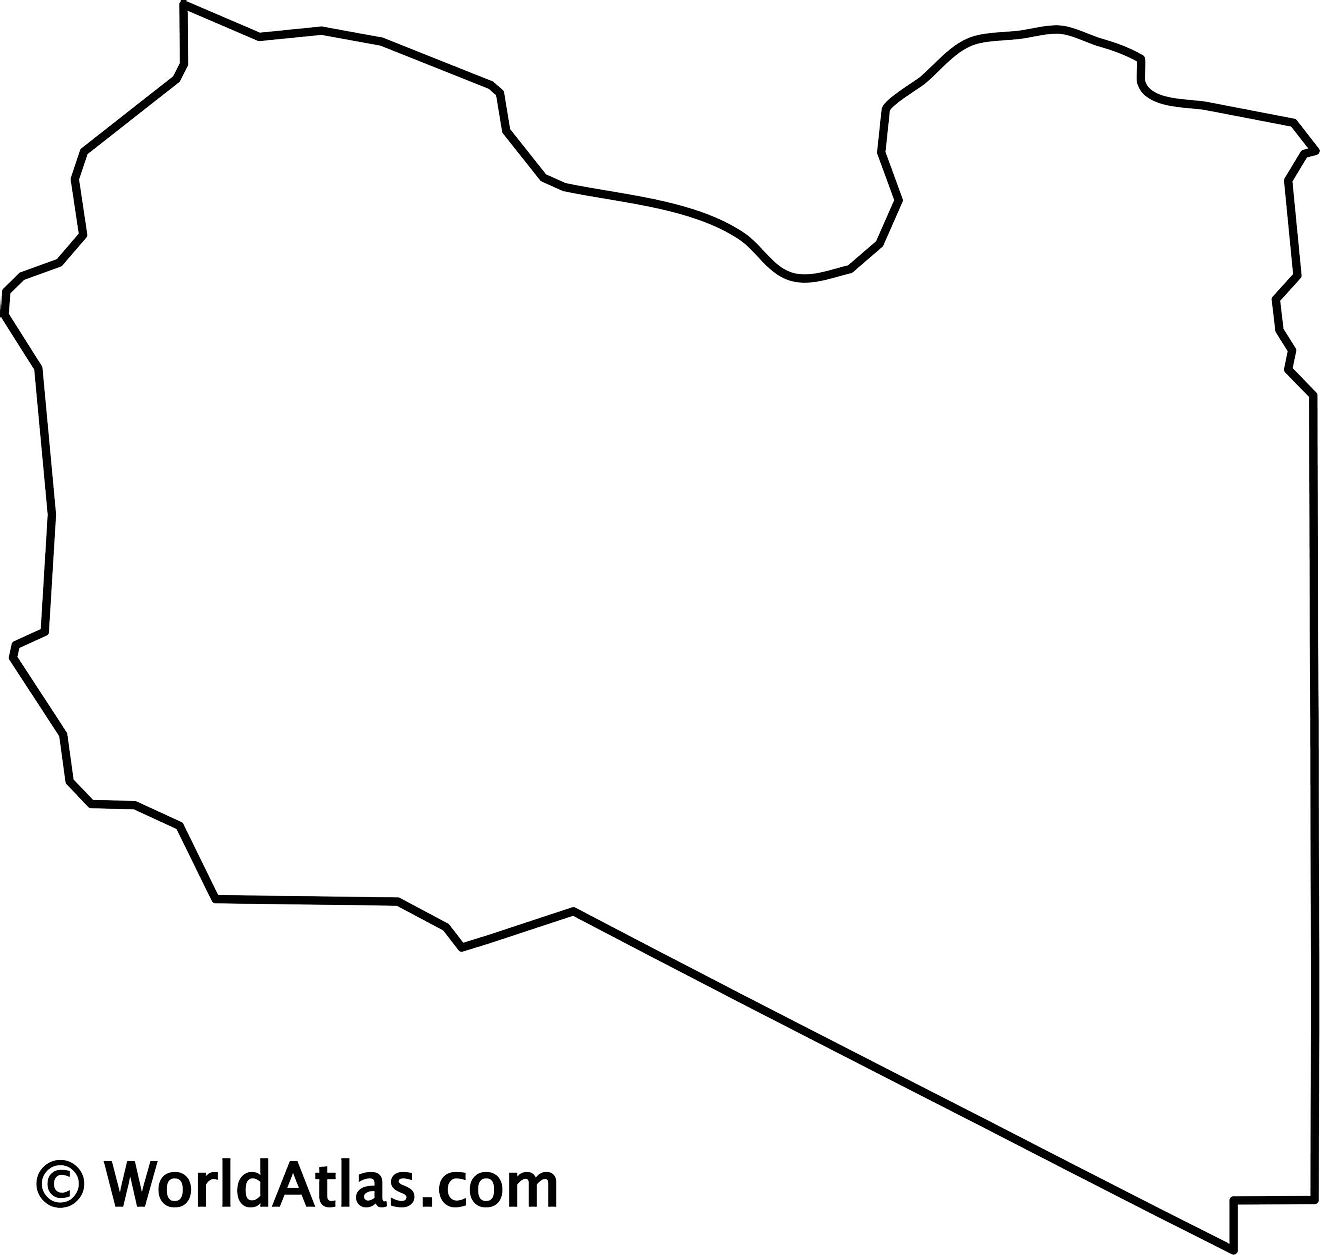 Blank Outline Map of Libya